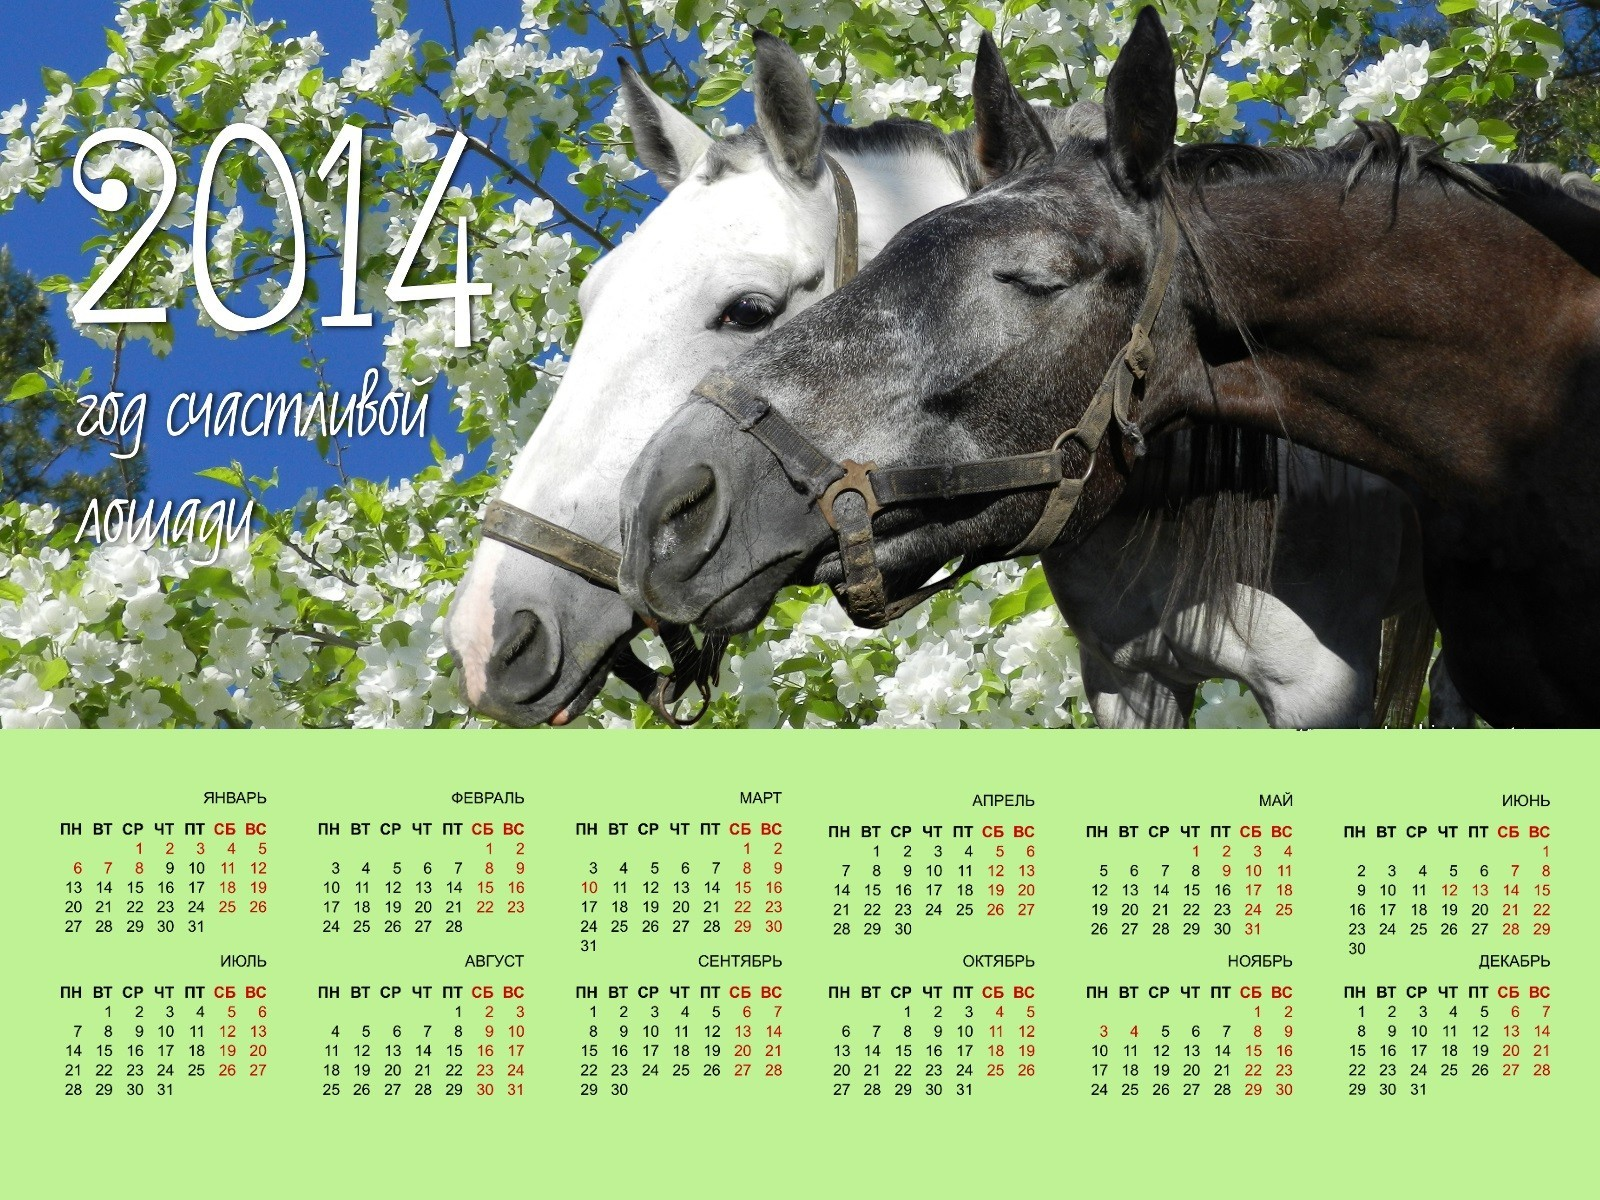 2014 Year Lucky Horse Free Wallpapers